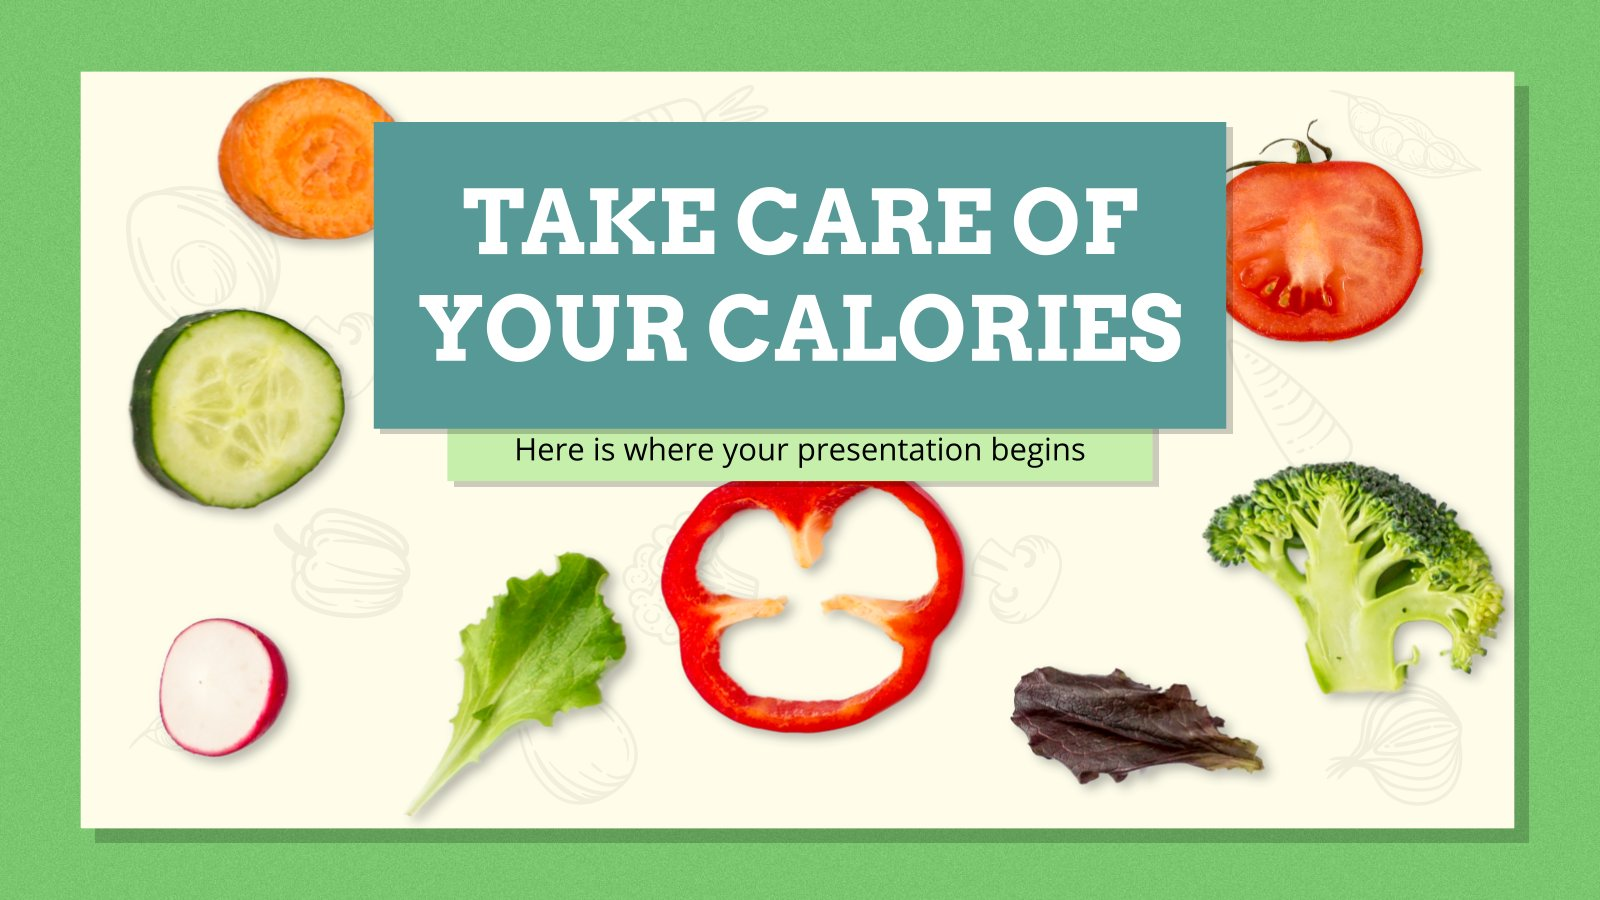 Take Care of Your Calories presentation template